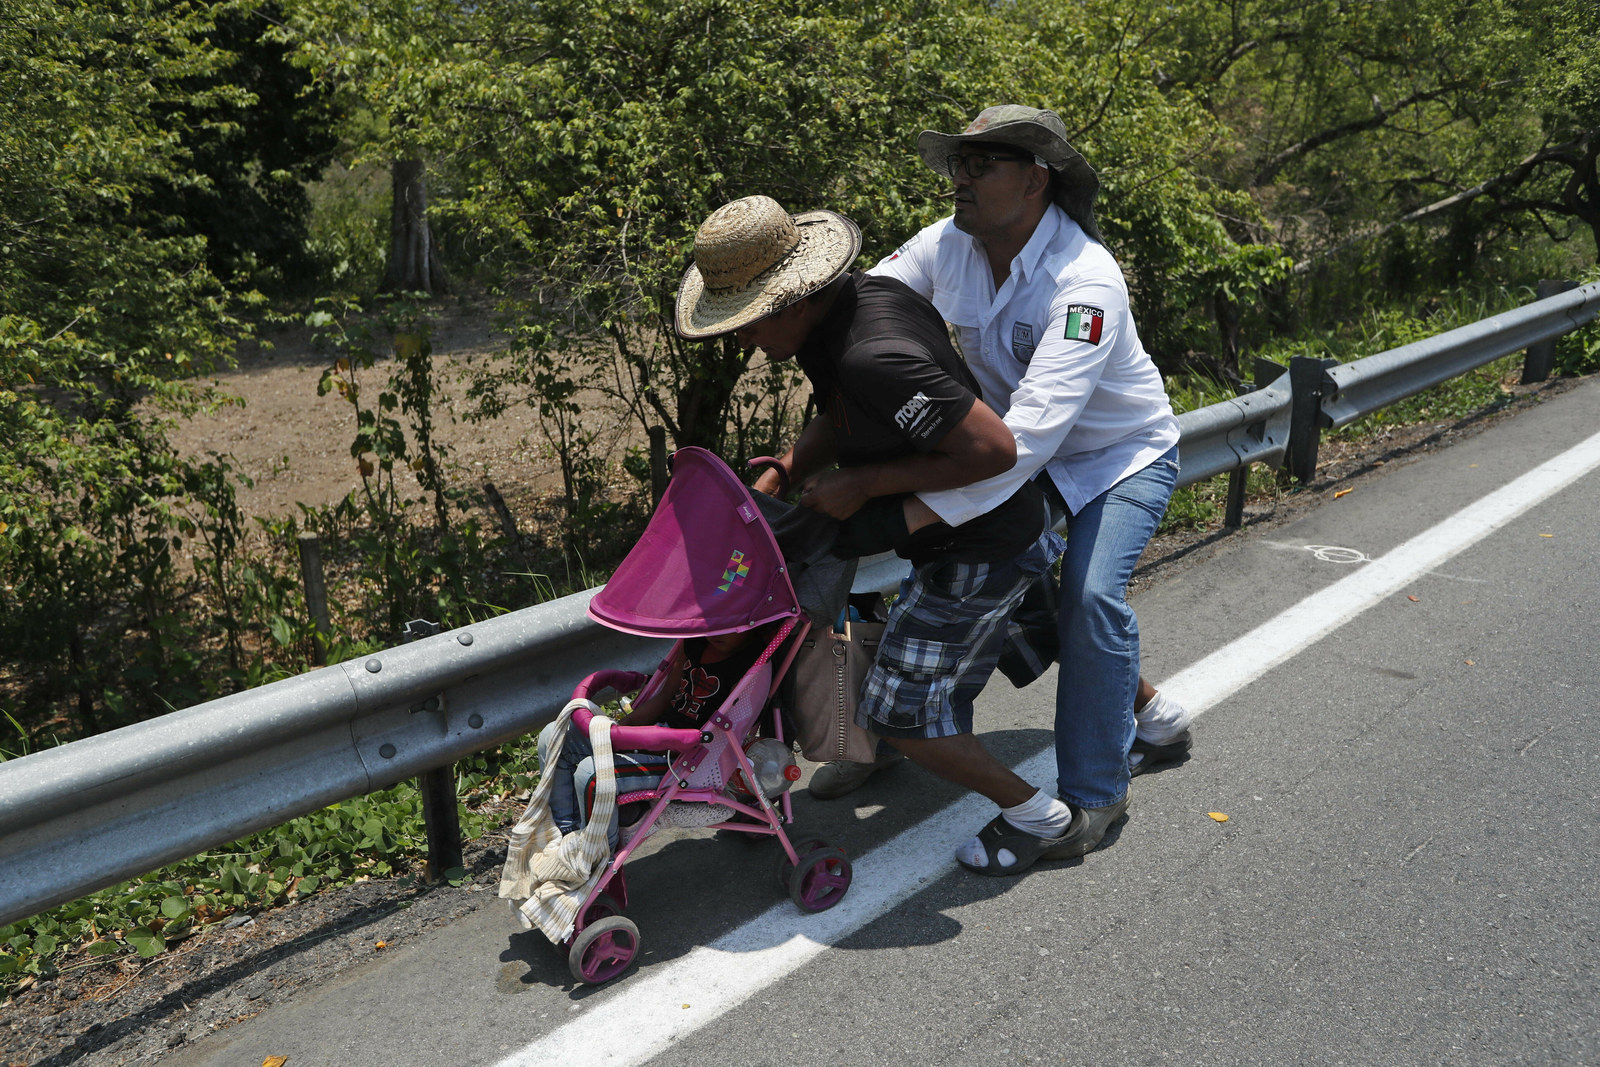 A Central American migrant pushing a child in a baby carriage is detained by a Mexican immigration agent from behind.